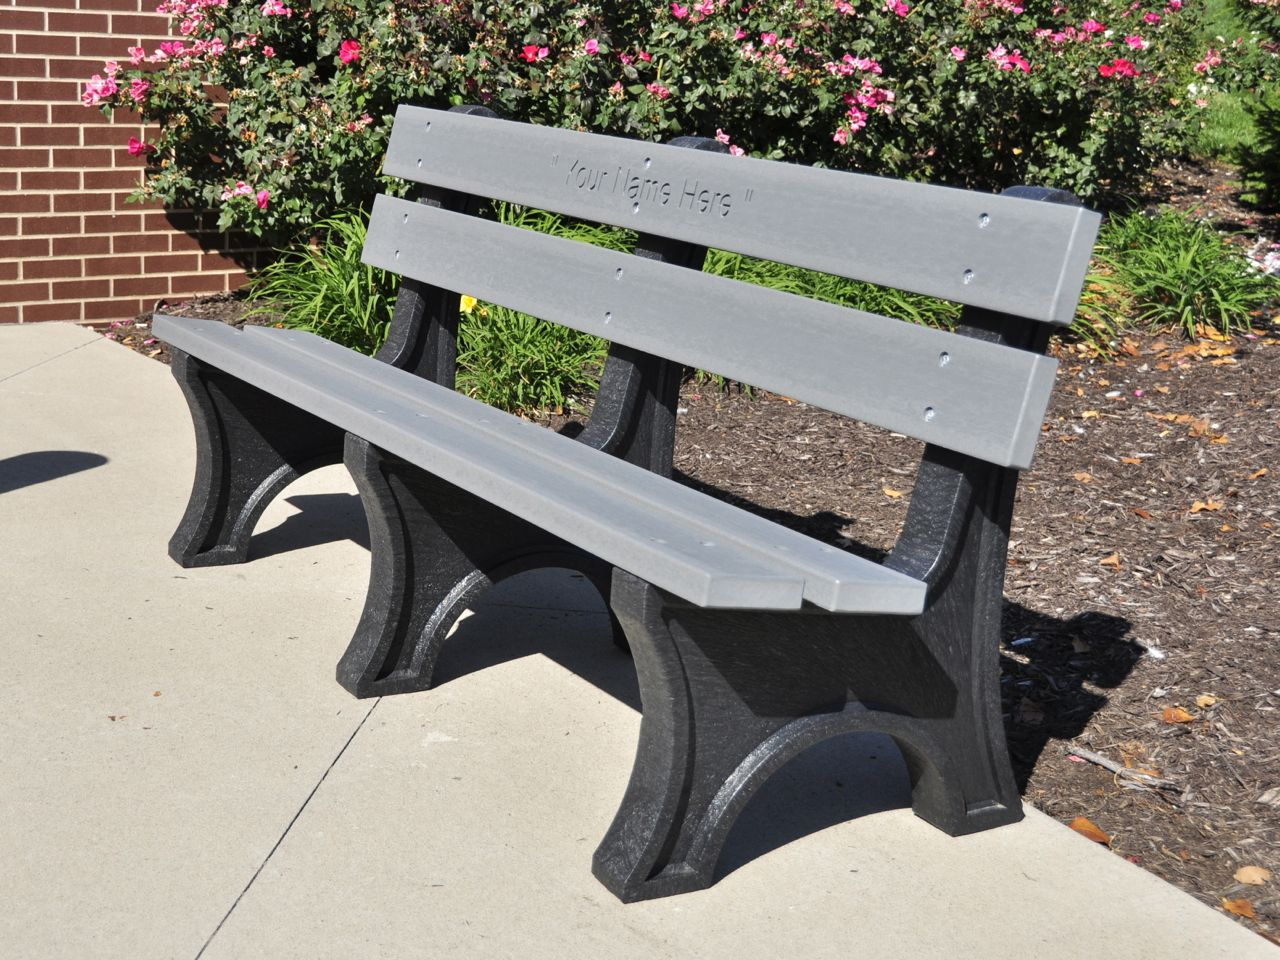 Colonial Bench By Jayhawk Plastics Outdoor Benches For Trails And Parks Aaa State Of Play